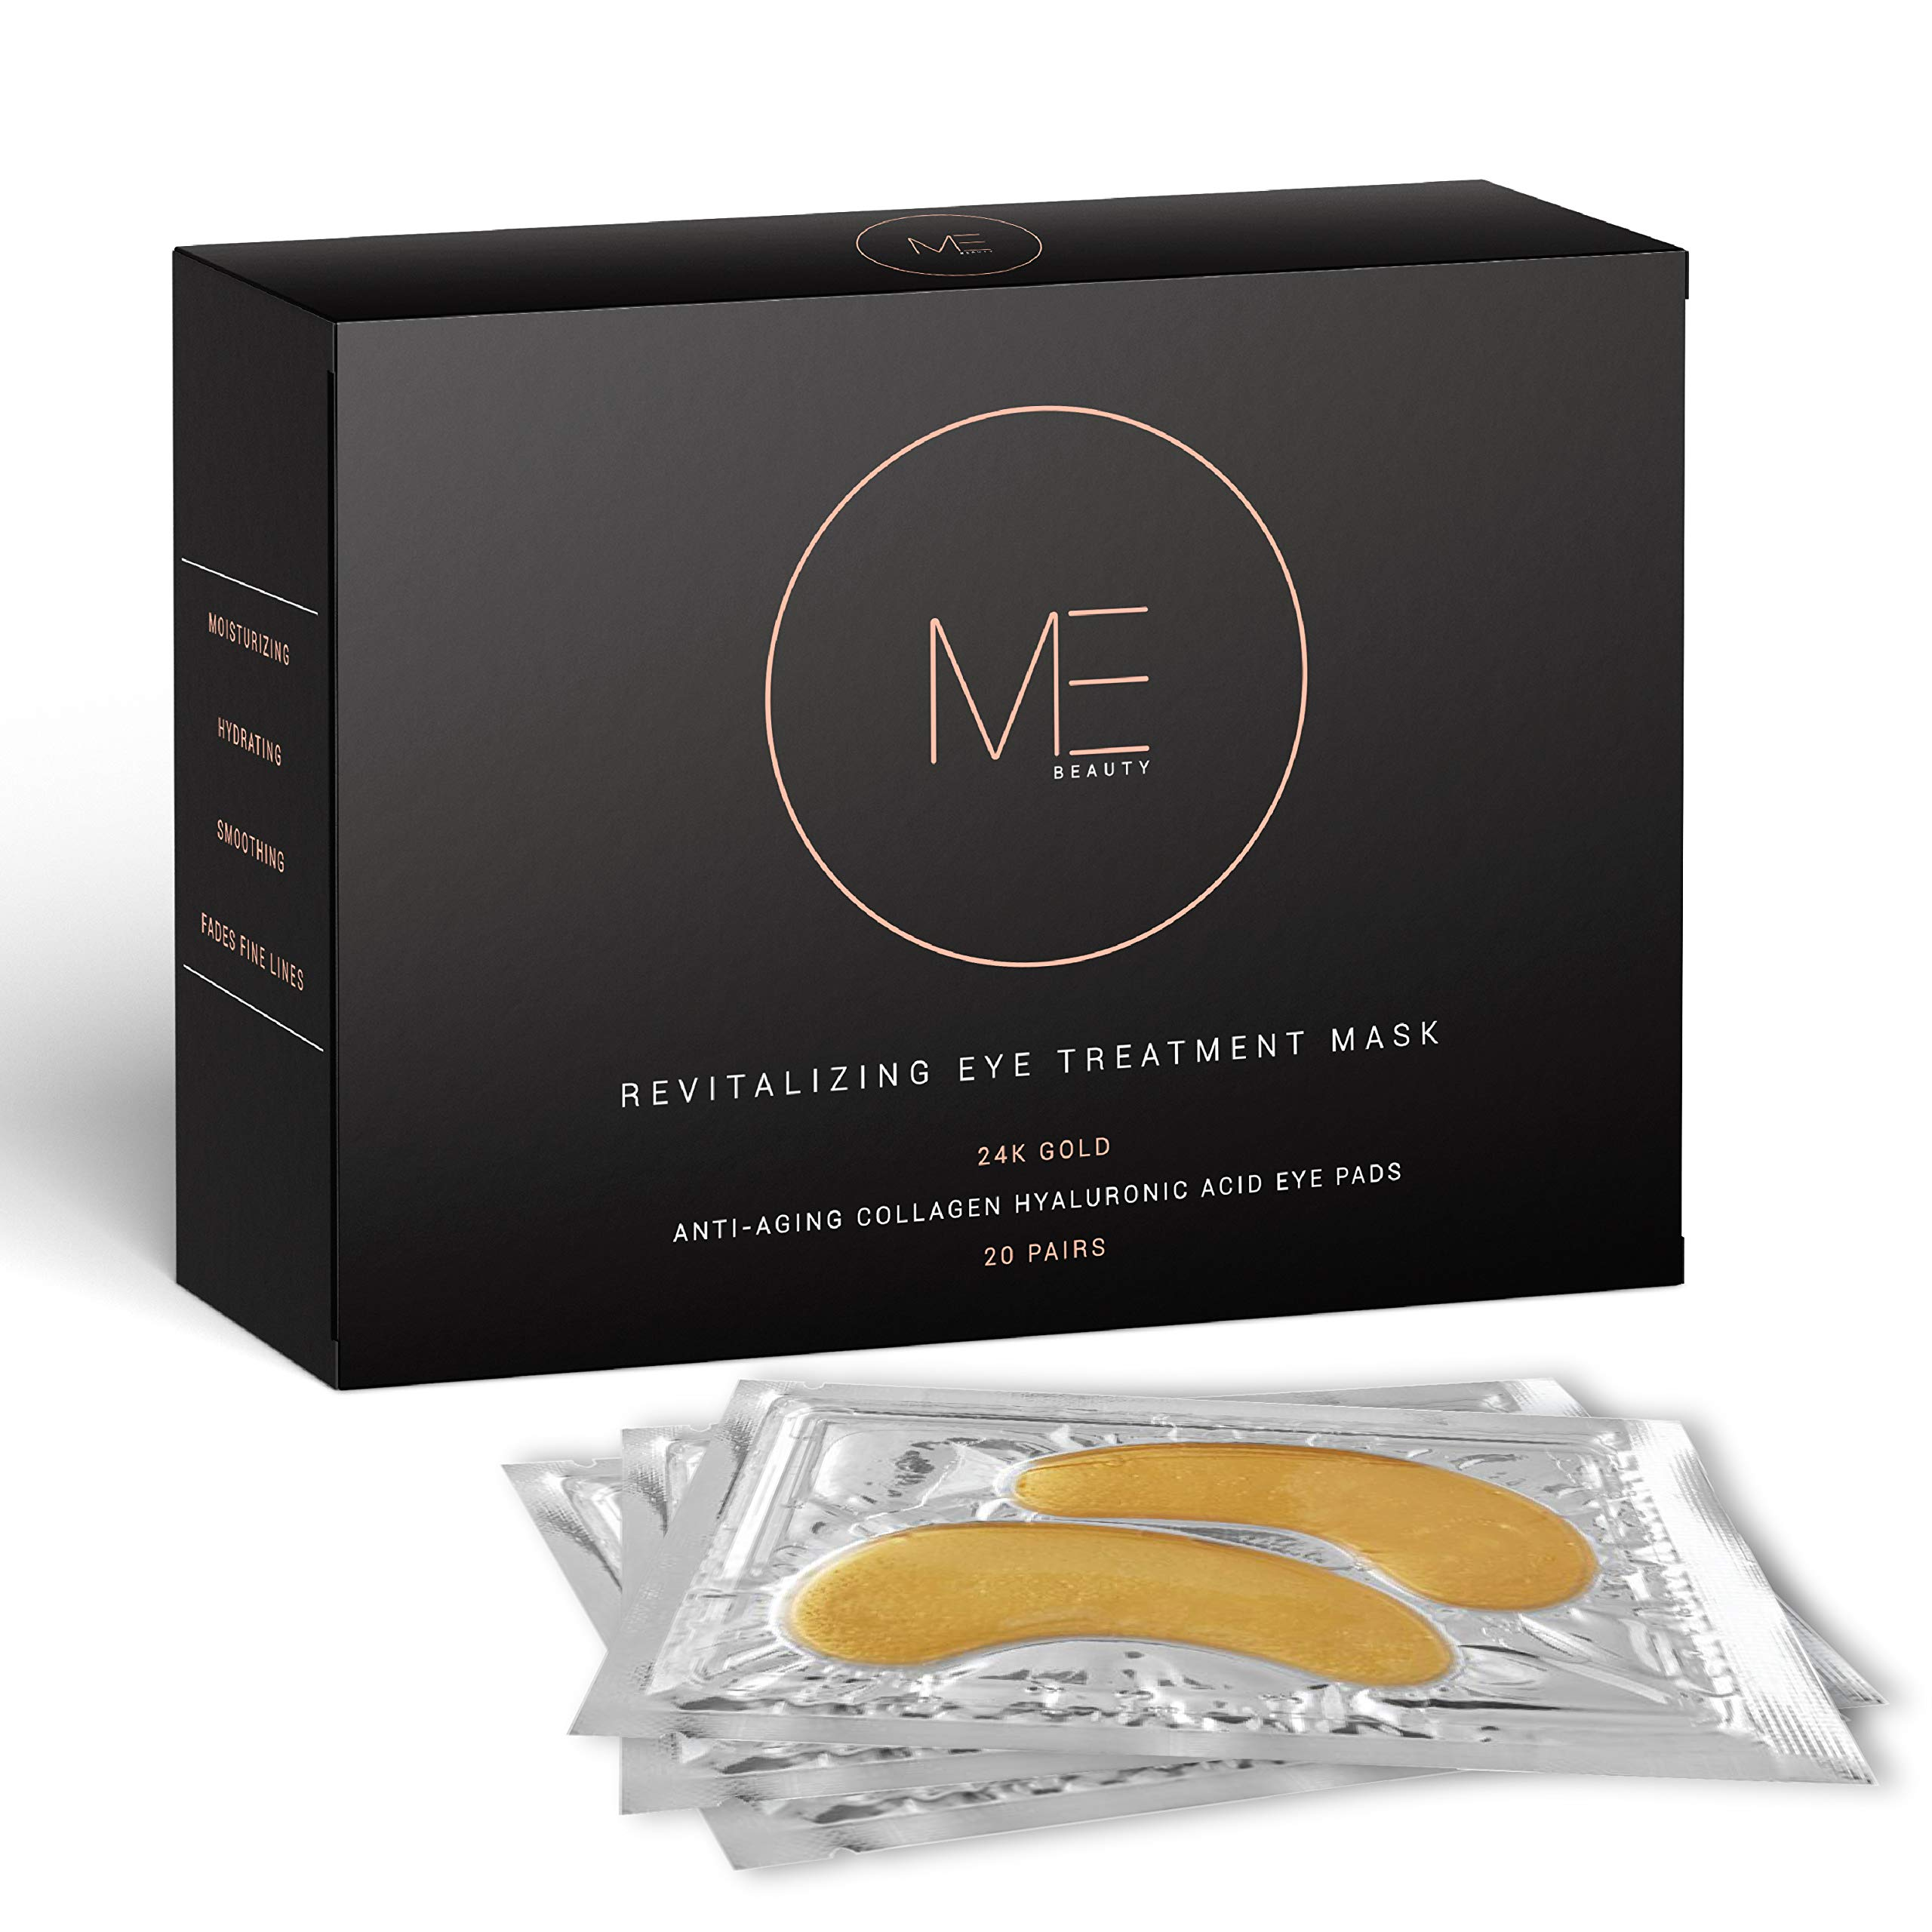 ME Beauty - 24k Gold Under Eye Collagen Mask, All Natural, Moisturizing, Anti Aging Gold Eye Patches - Reduces Puffiness, Wrinkles, Bags, and Dark Circles For Men and Women (20 Pairs) by MIND · BODY · SOUL